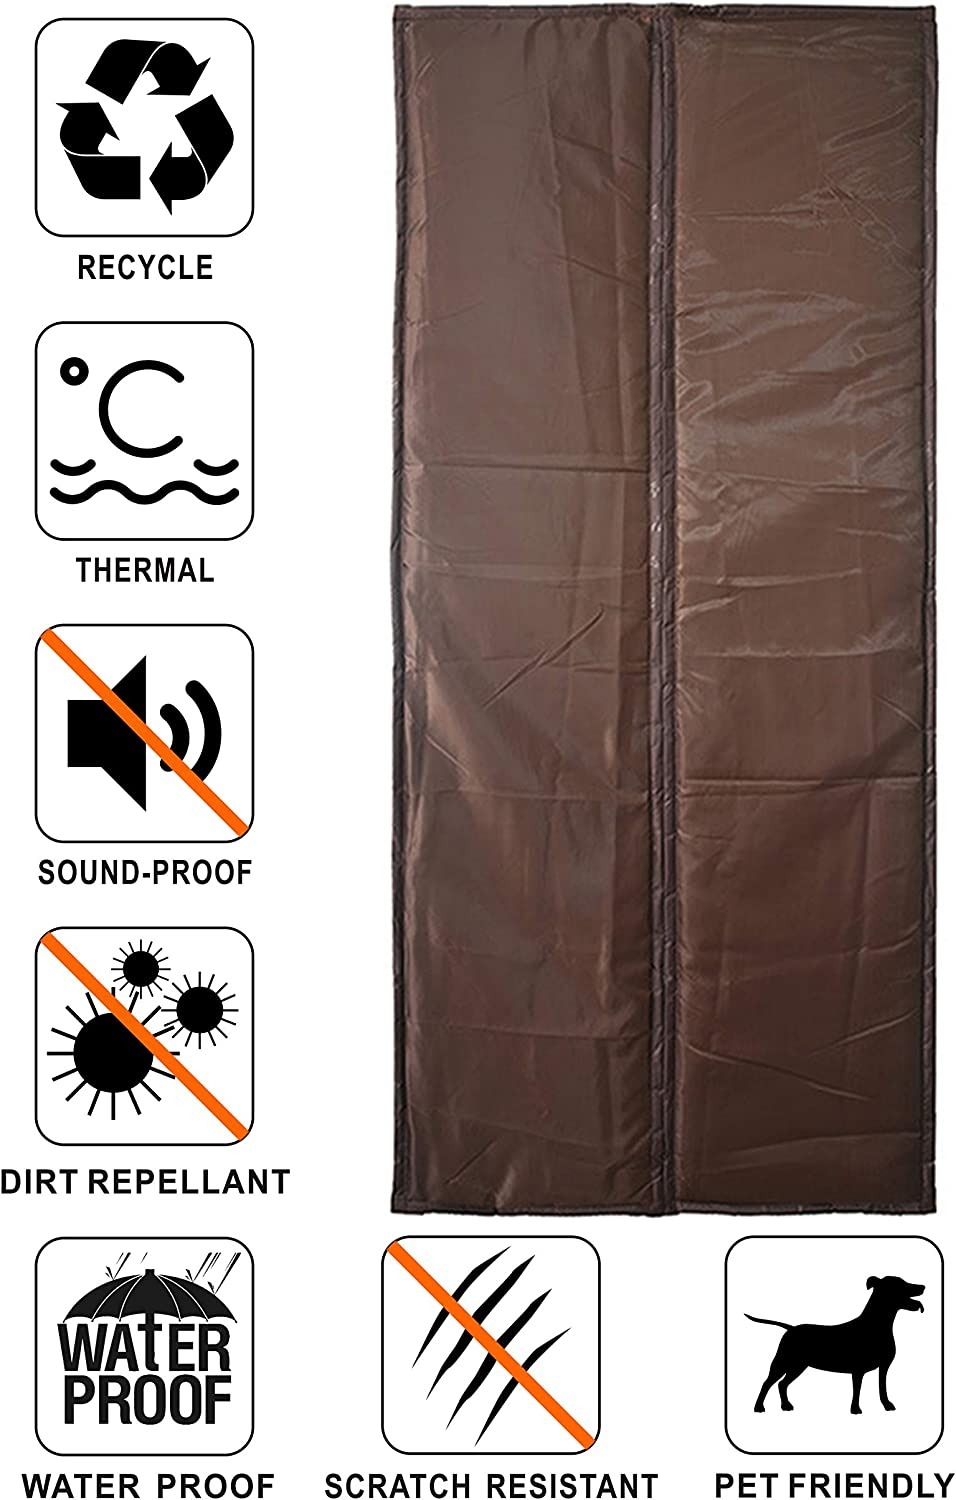 Liveinu Isolant Thermique Isolation Porte Avec Magn/étique Moustiquaire Rideau De Porte Isolant Coton Rideau doccultation Coupe-vent Imperm/éable Isolation Phonique 70x200cm Marr/ón